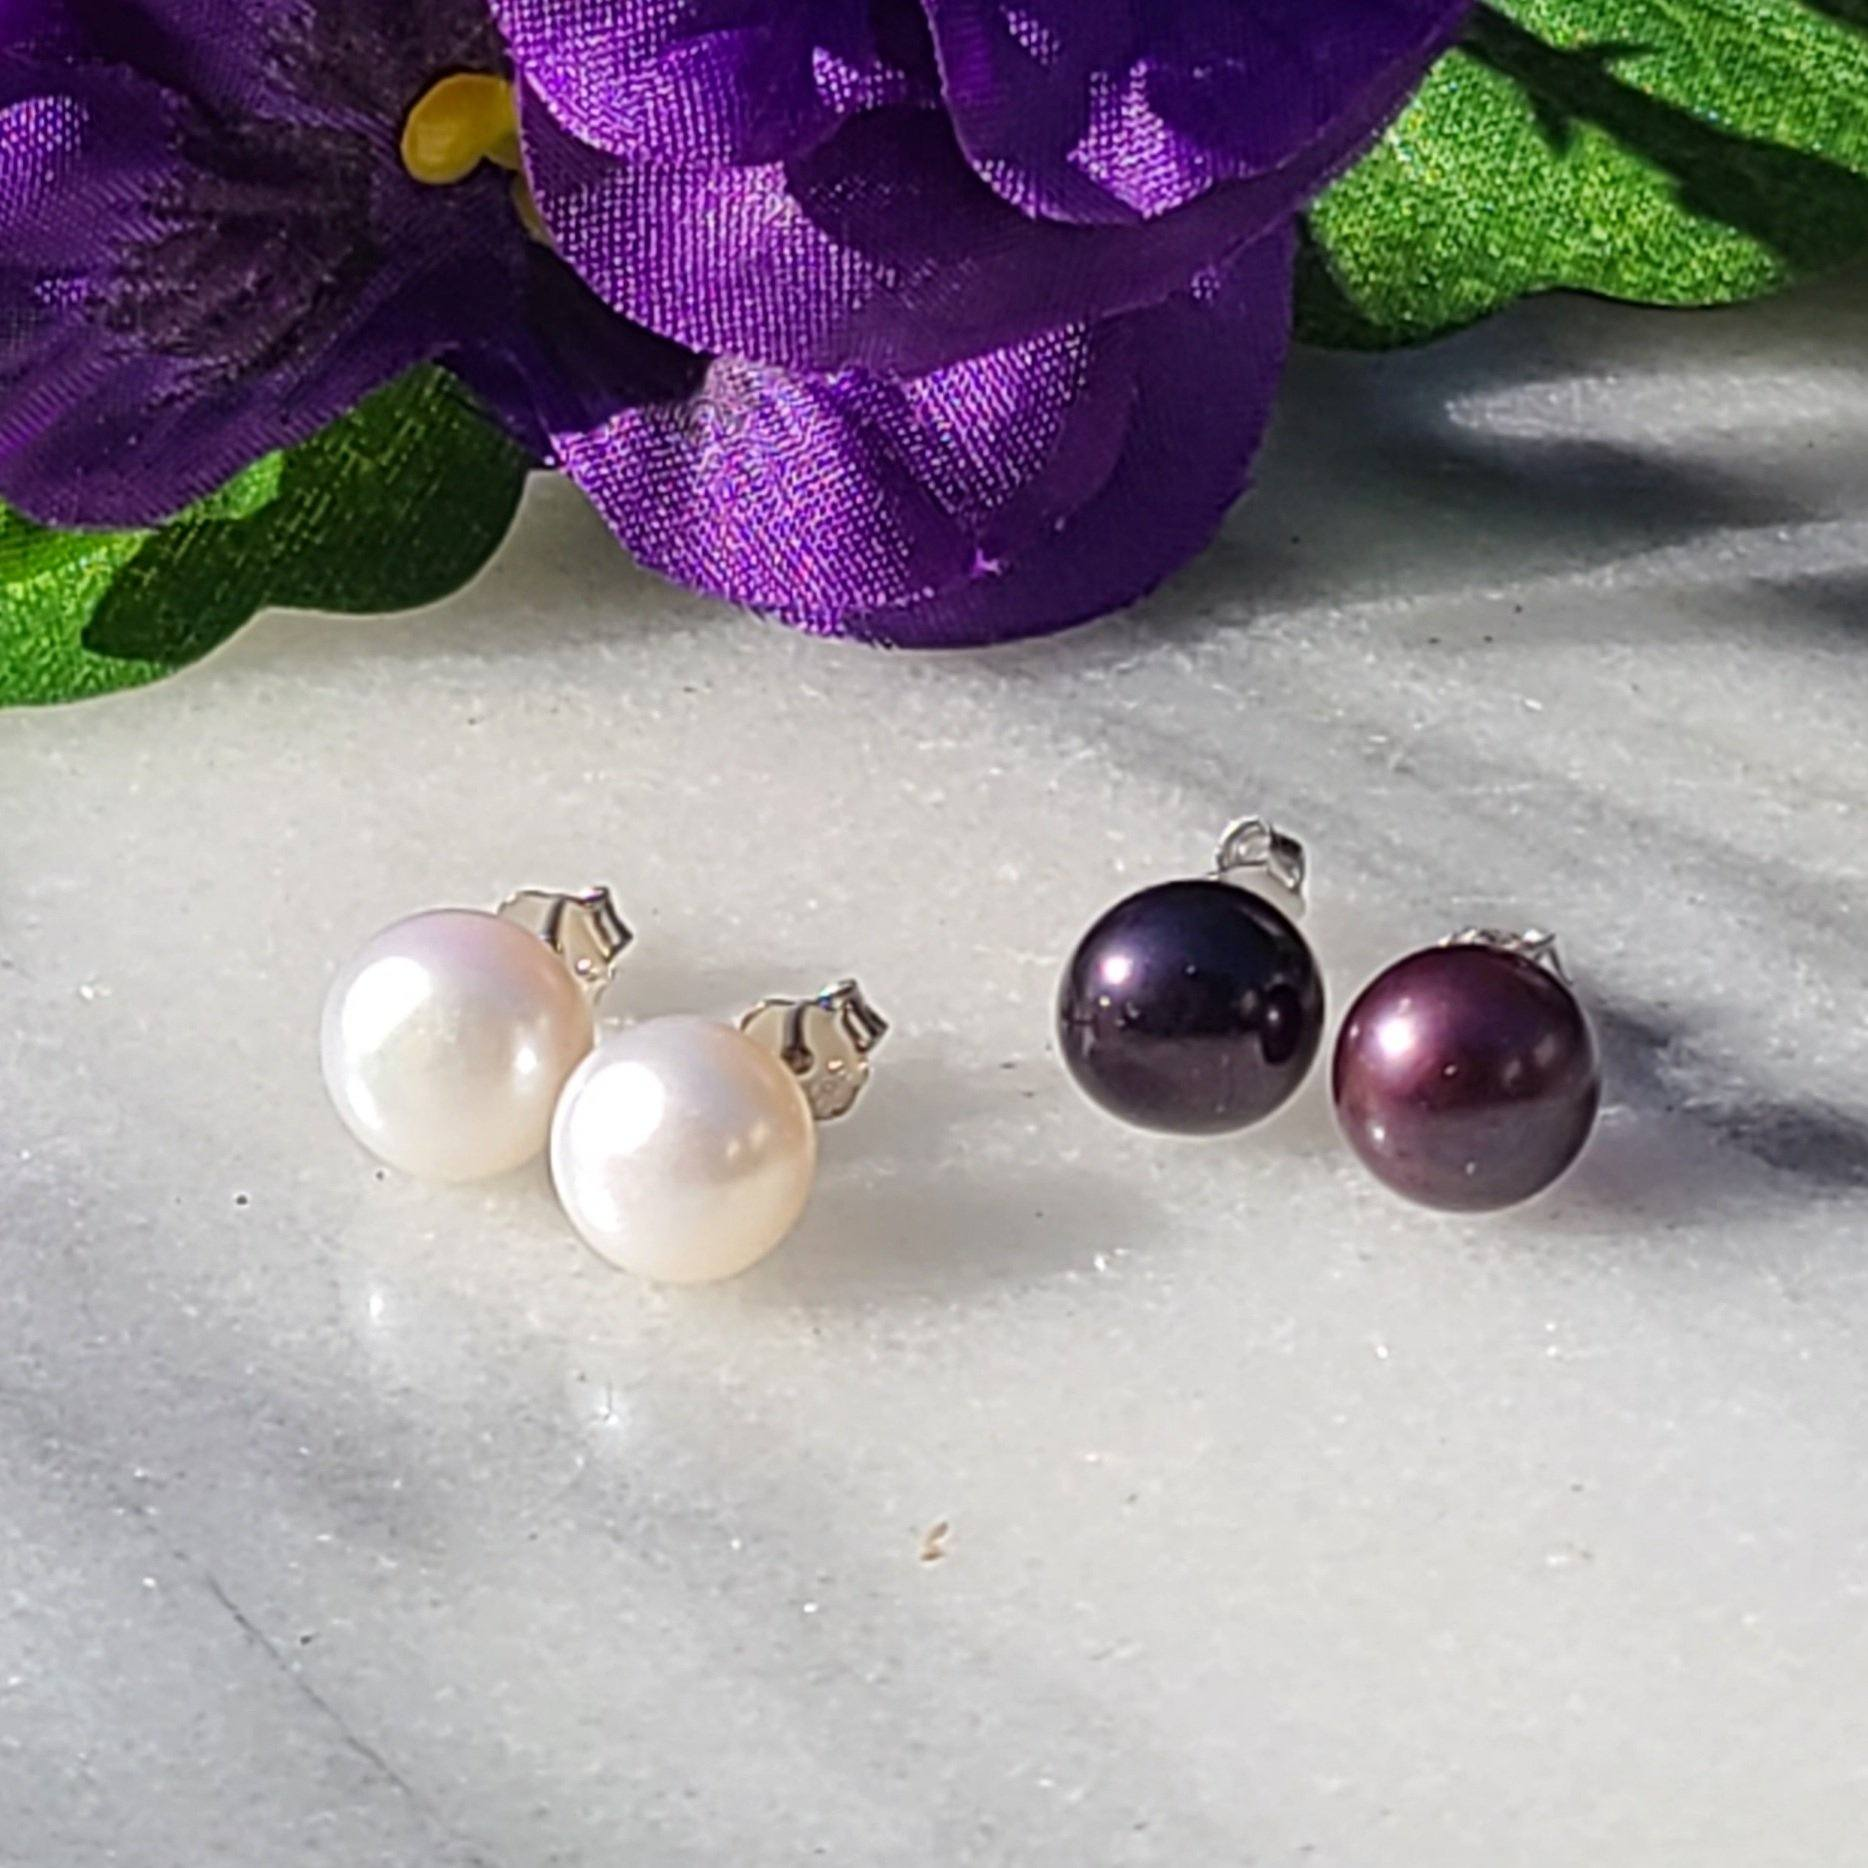 Pearl Stud Earrings Jewelry & Accessories - Earrings Alora Boutique